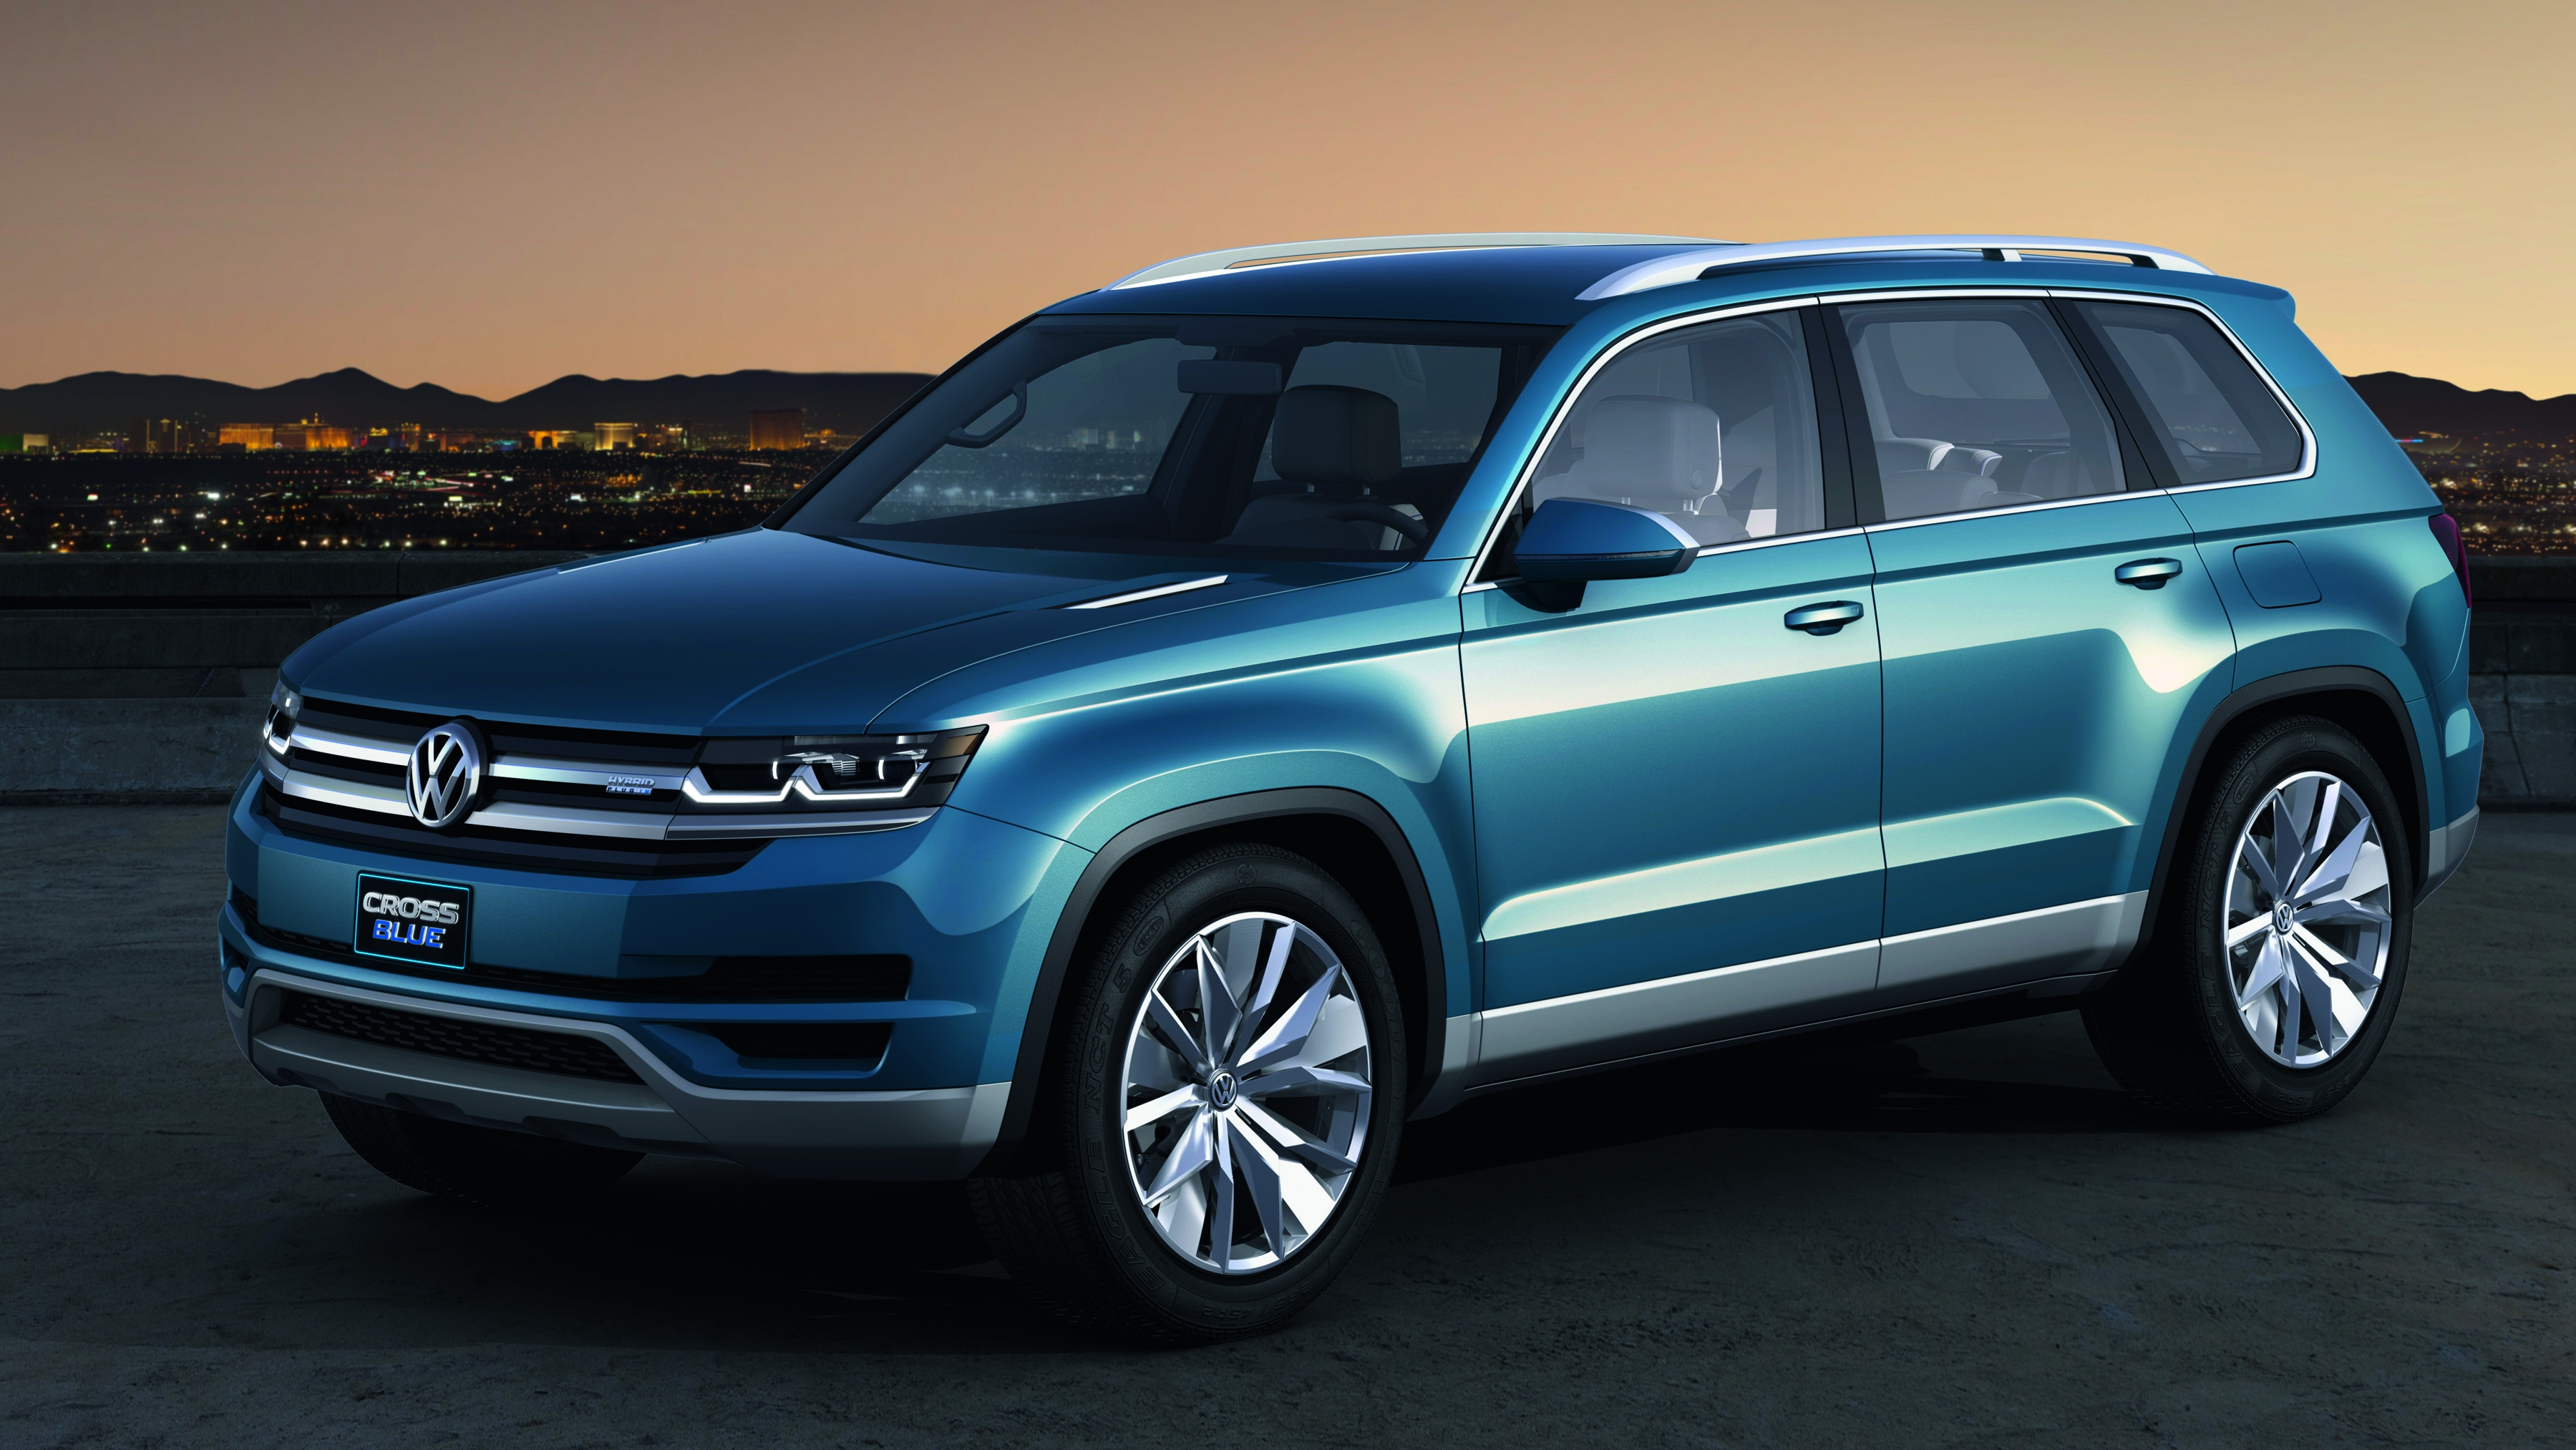 vw 39 s new midsize crossover to be called atlas in the u s market picture top speed. Black Bedroom Furniture Sets. Home Design Ideas